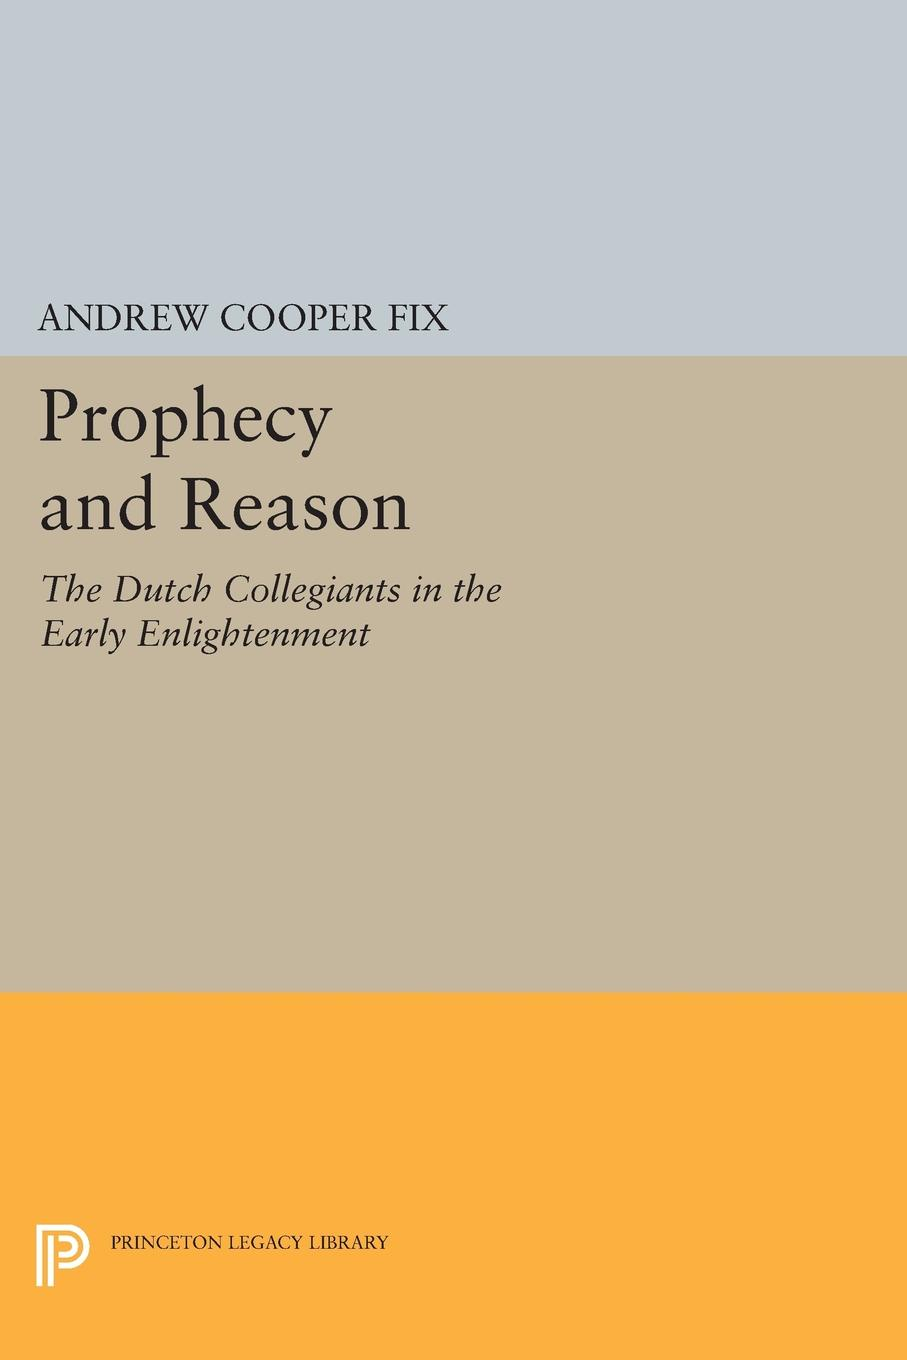 Фото - Andrew Cooper Fix Prophecy and Reason. The Dutch Collegiants in the Early Enlightenment edmundson george anglo dutch rivalry during the first half of the seventeenth century